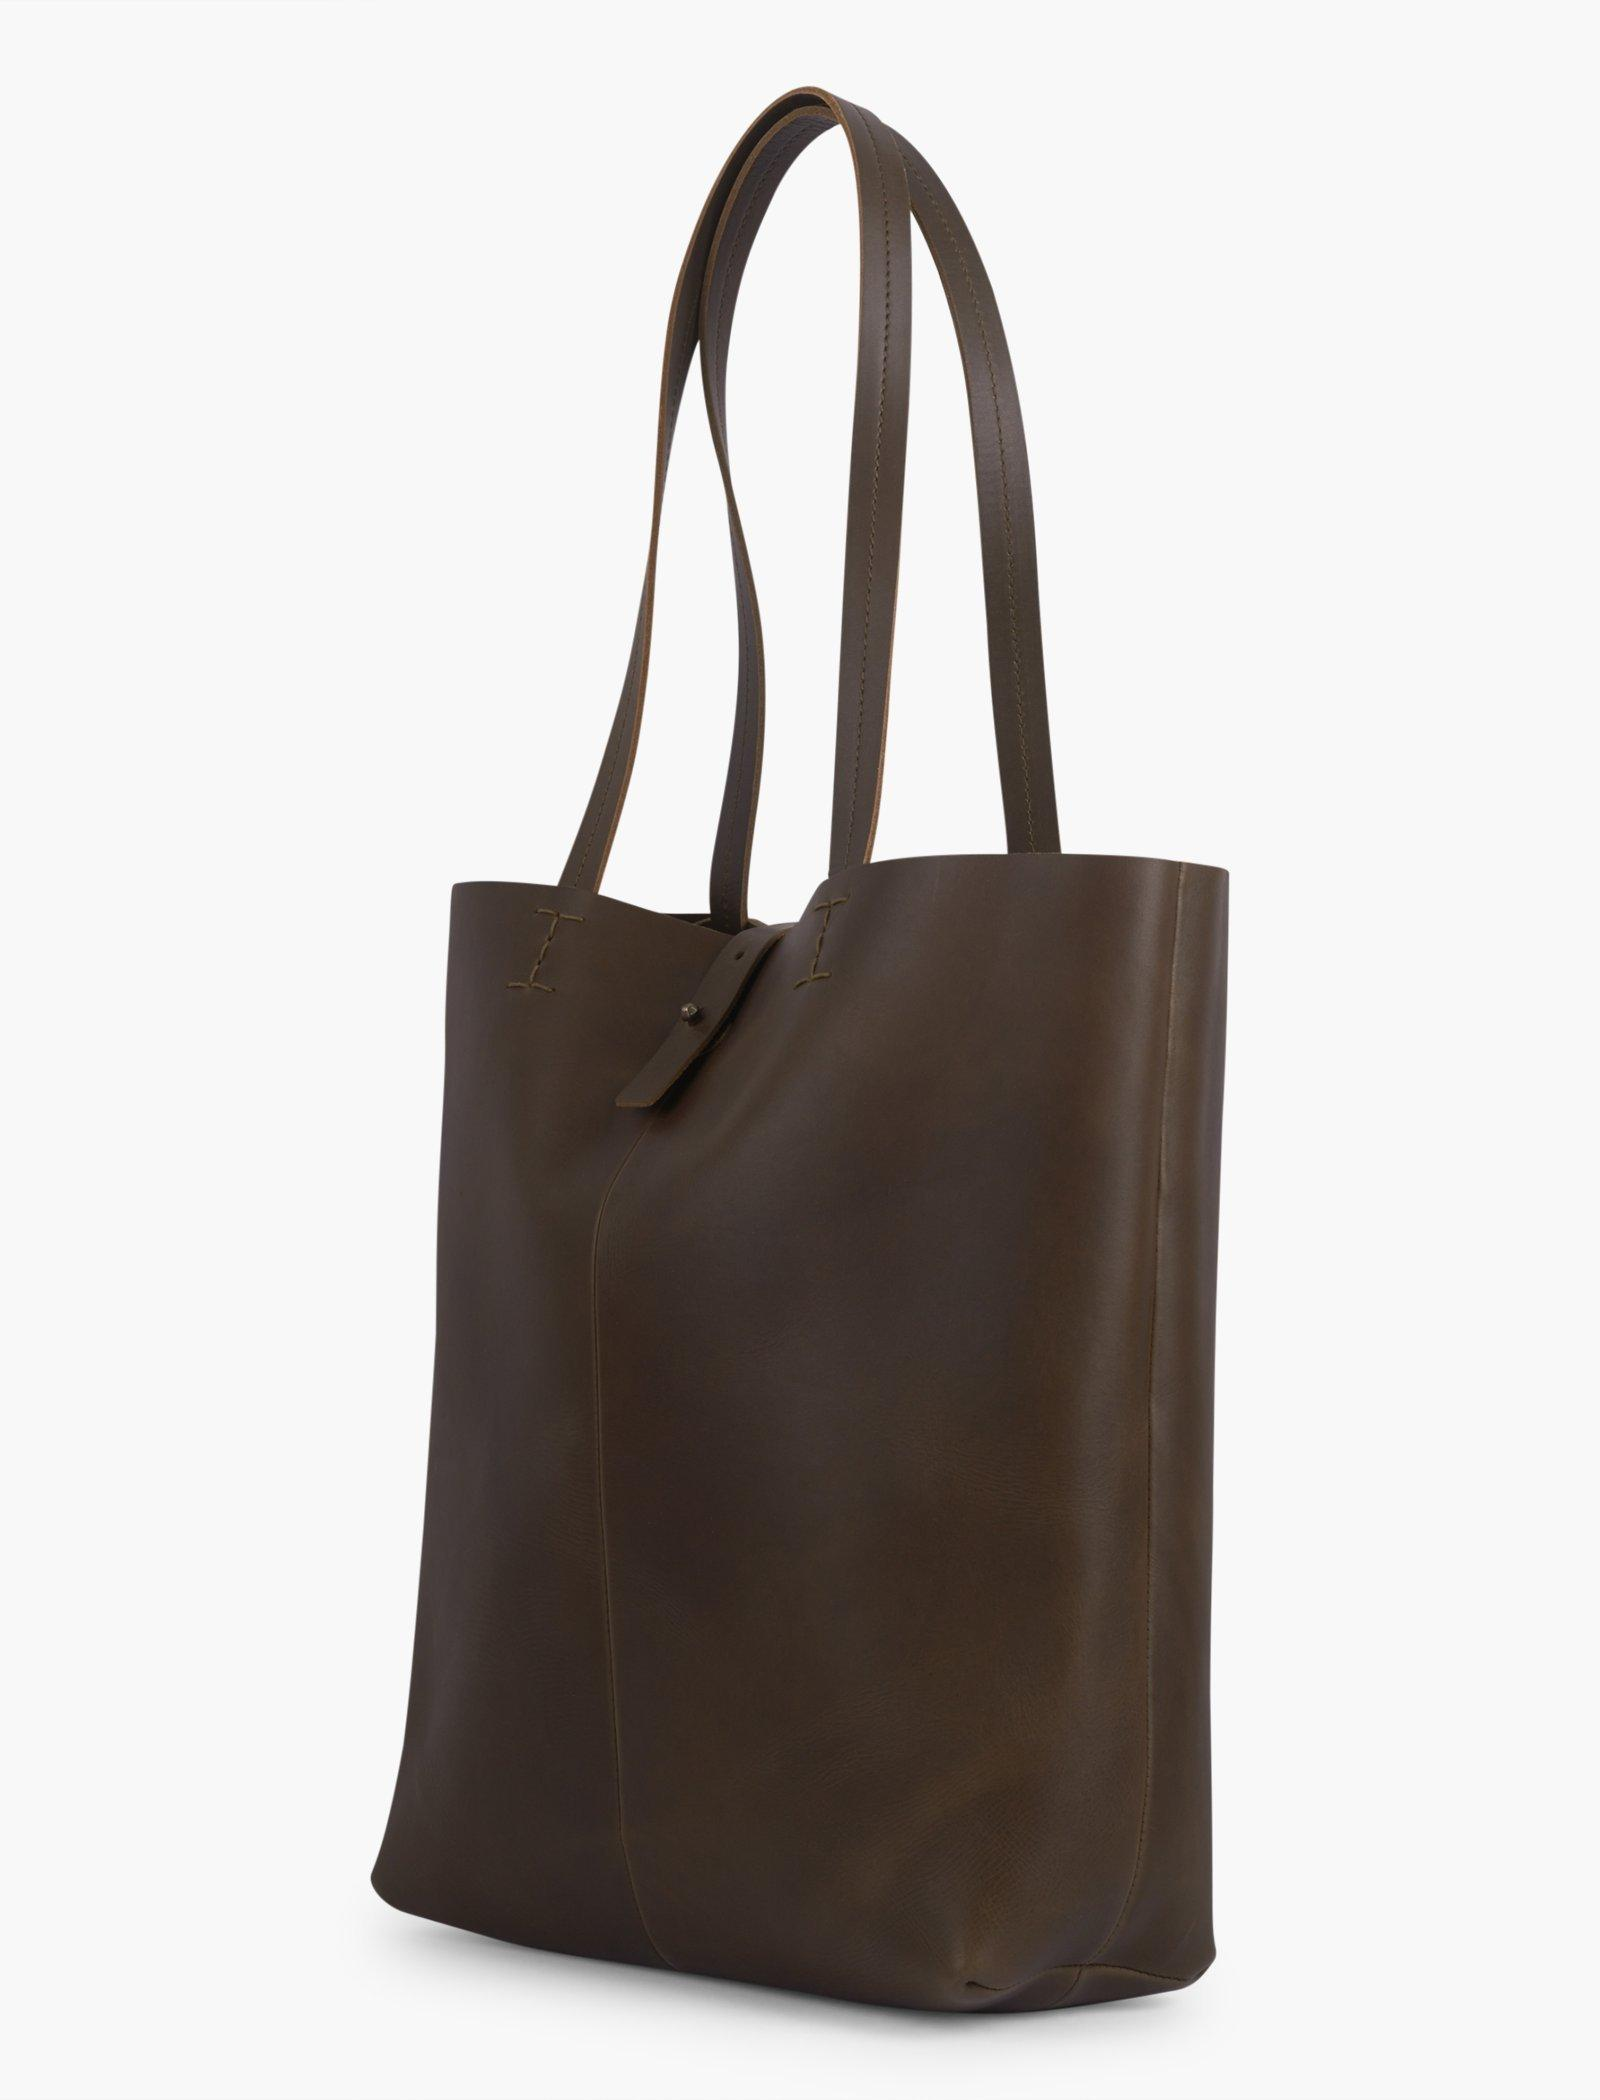 THE POINT LEATHER TOTE BAG, image 2